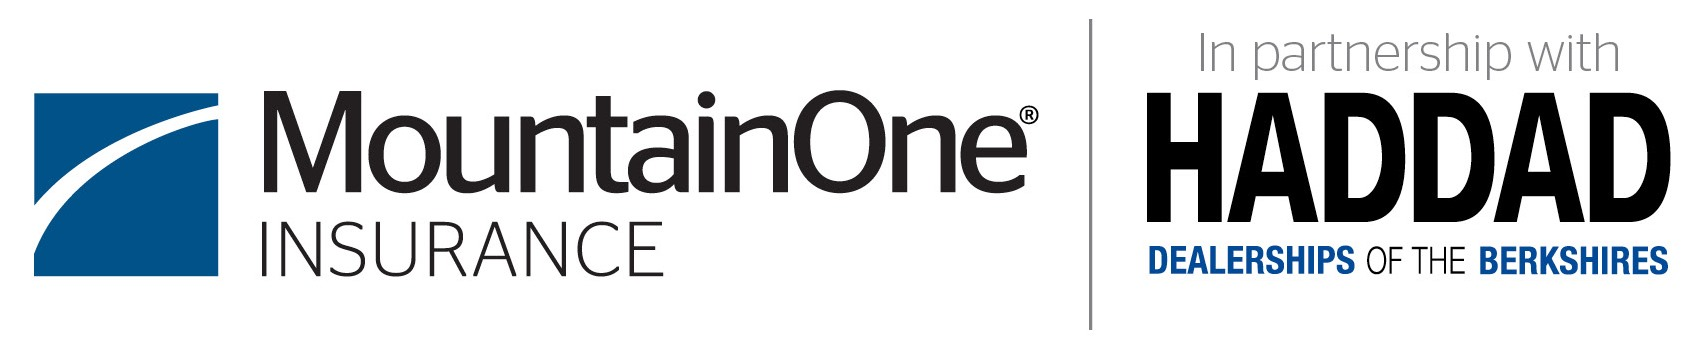 MountainOne Insurance and Haddad logo